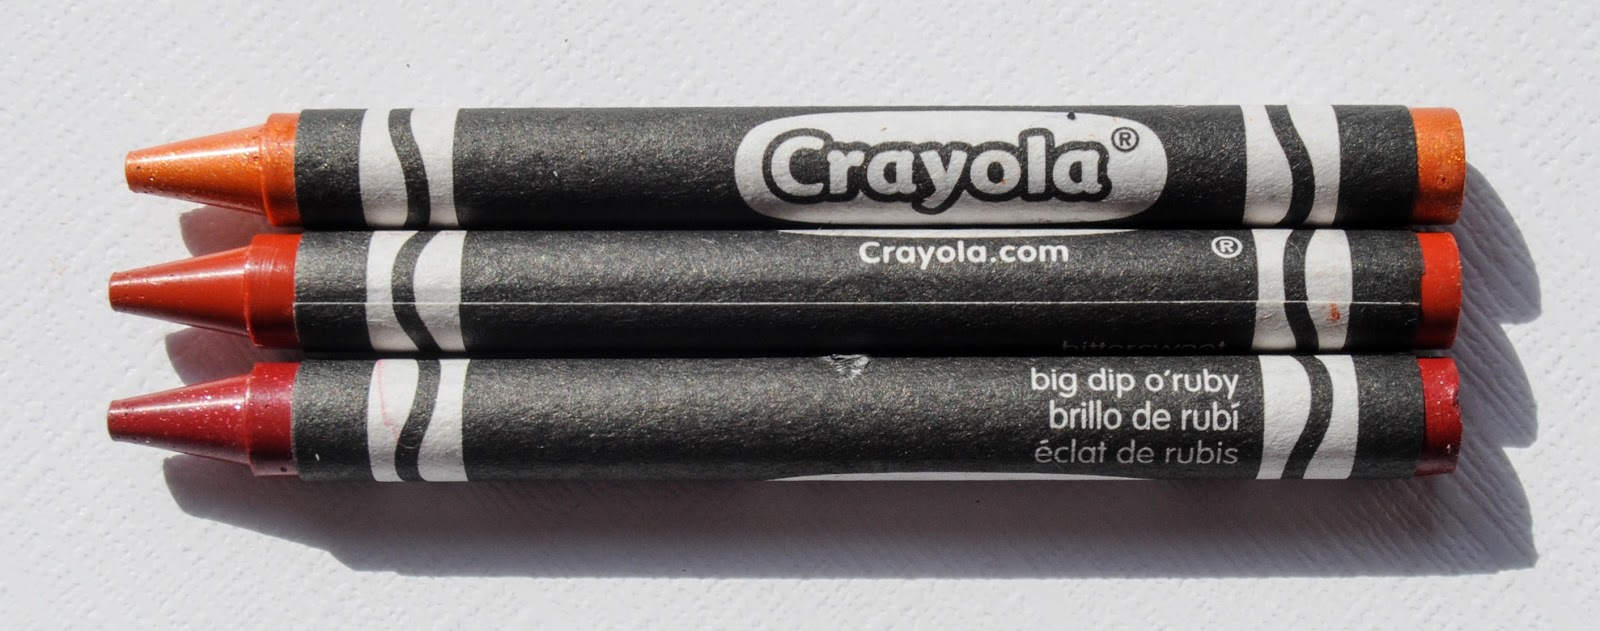 Crayola 64 Count Star Wars Crayons: What's Inside the Box ...